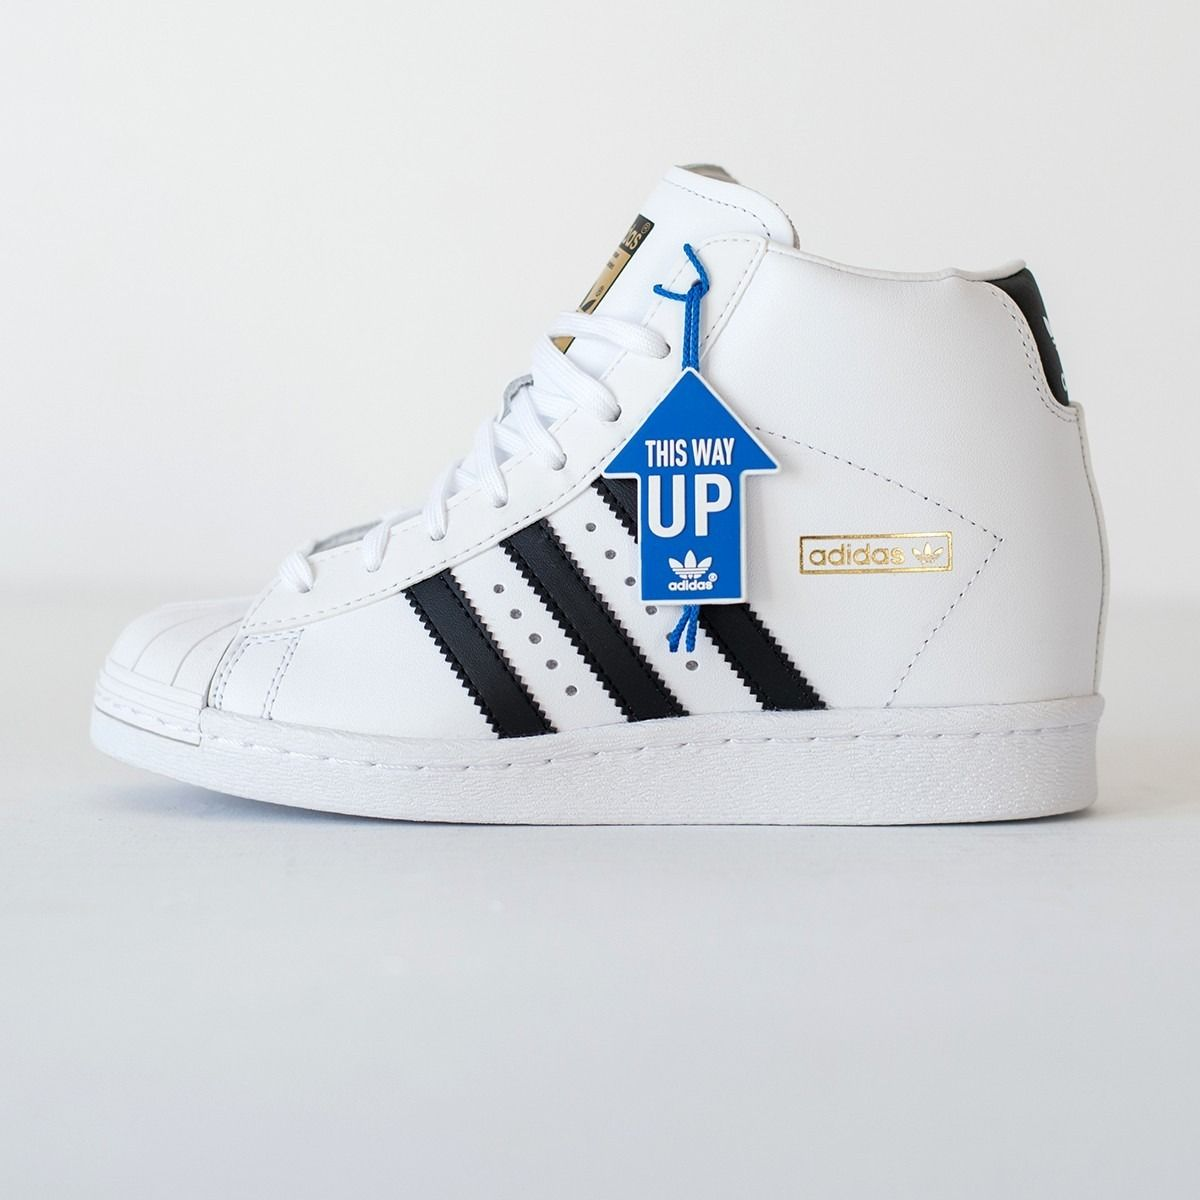 botitas-adidas-originals-superstar-up-mujer-brand-sports ...